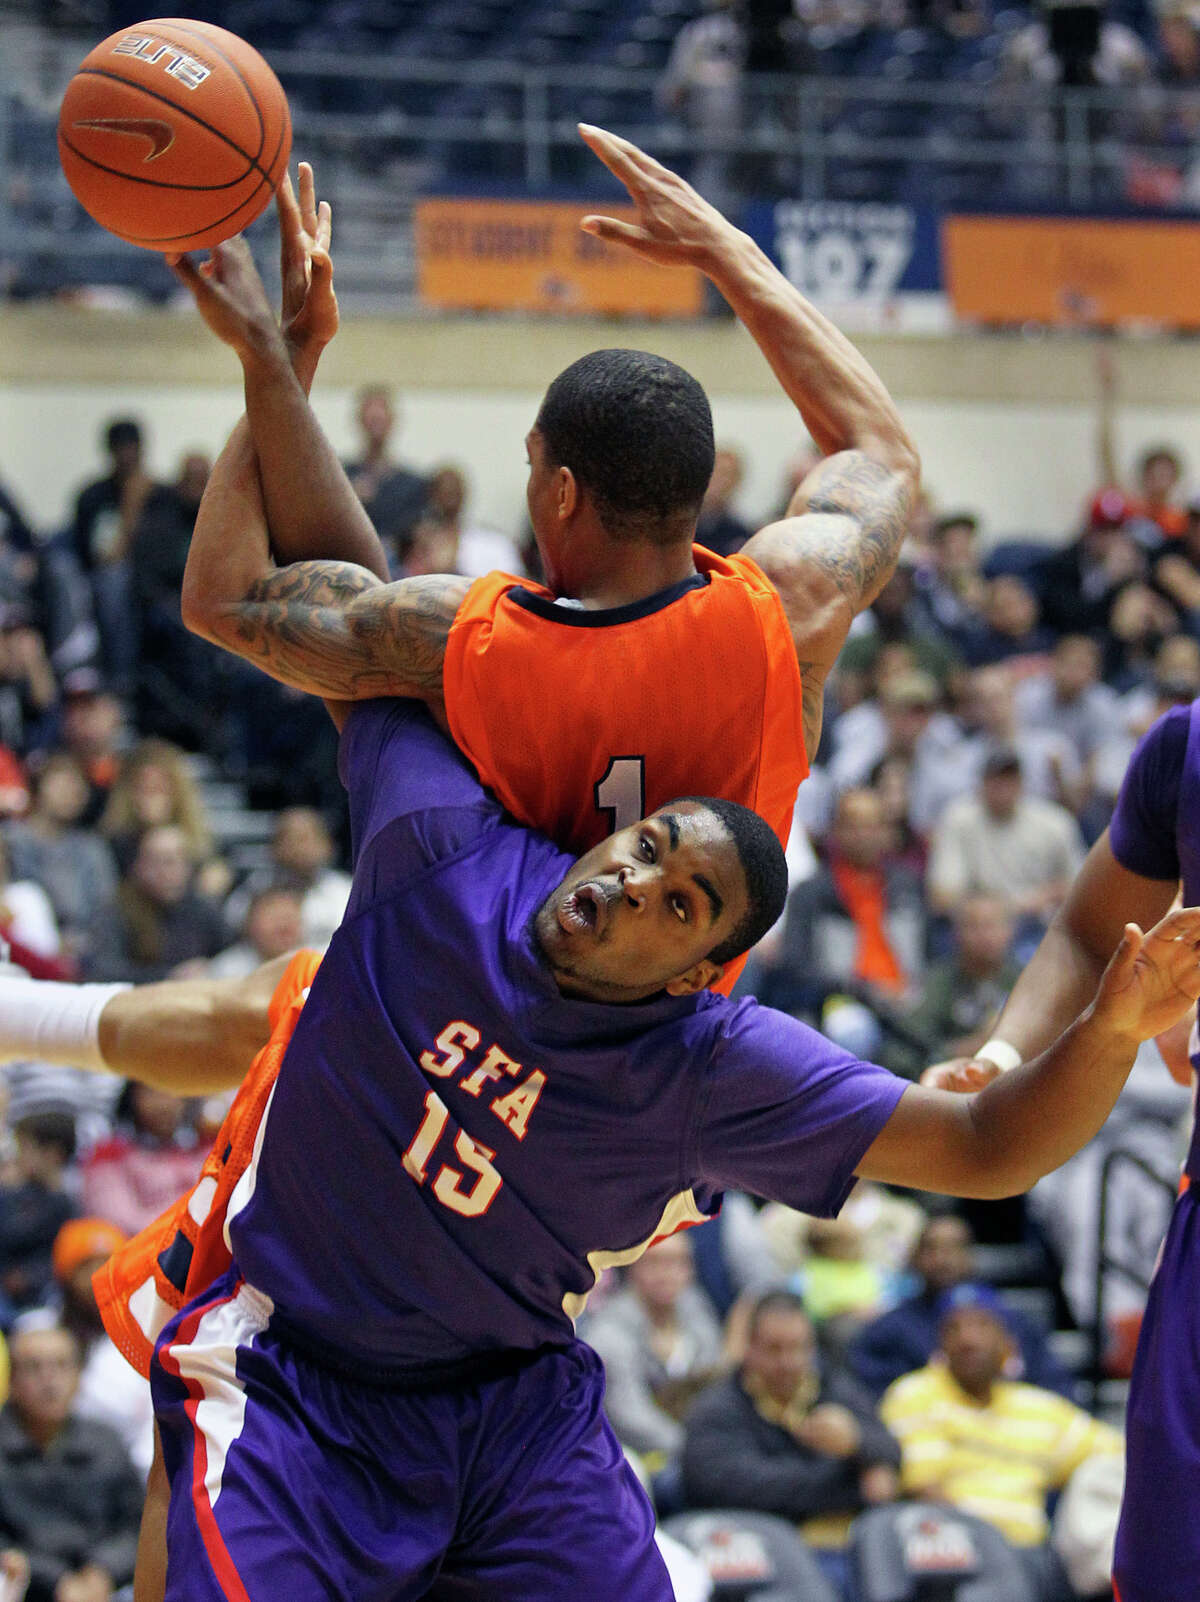 SFA's Joe Bright moves under the rebounding effort of Stephen Franklin and is called for a position foul as the Roadrunners play the SFA Lumberjacks at the UTSA Convocation Center on February 11, 2012.